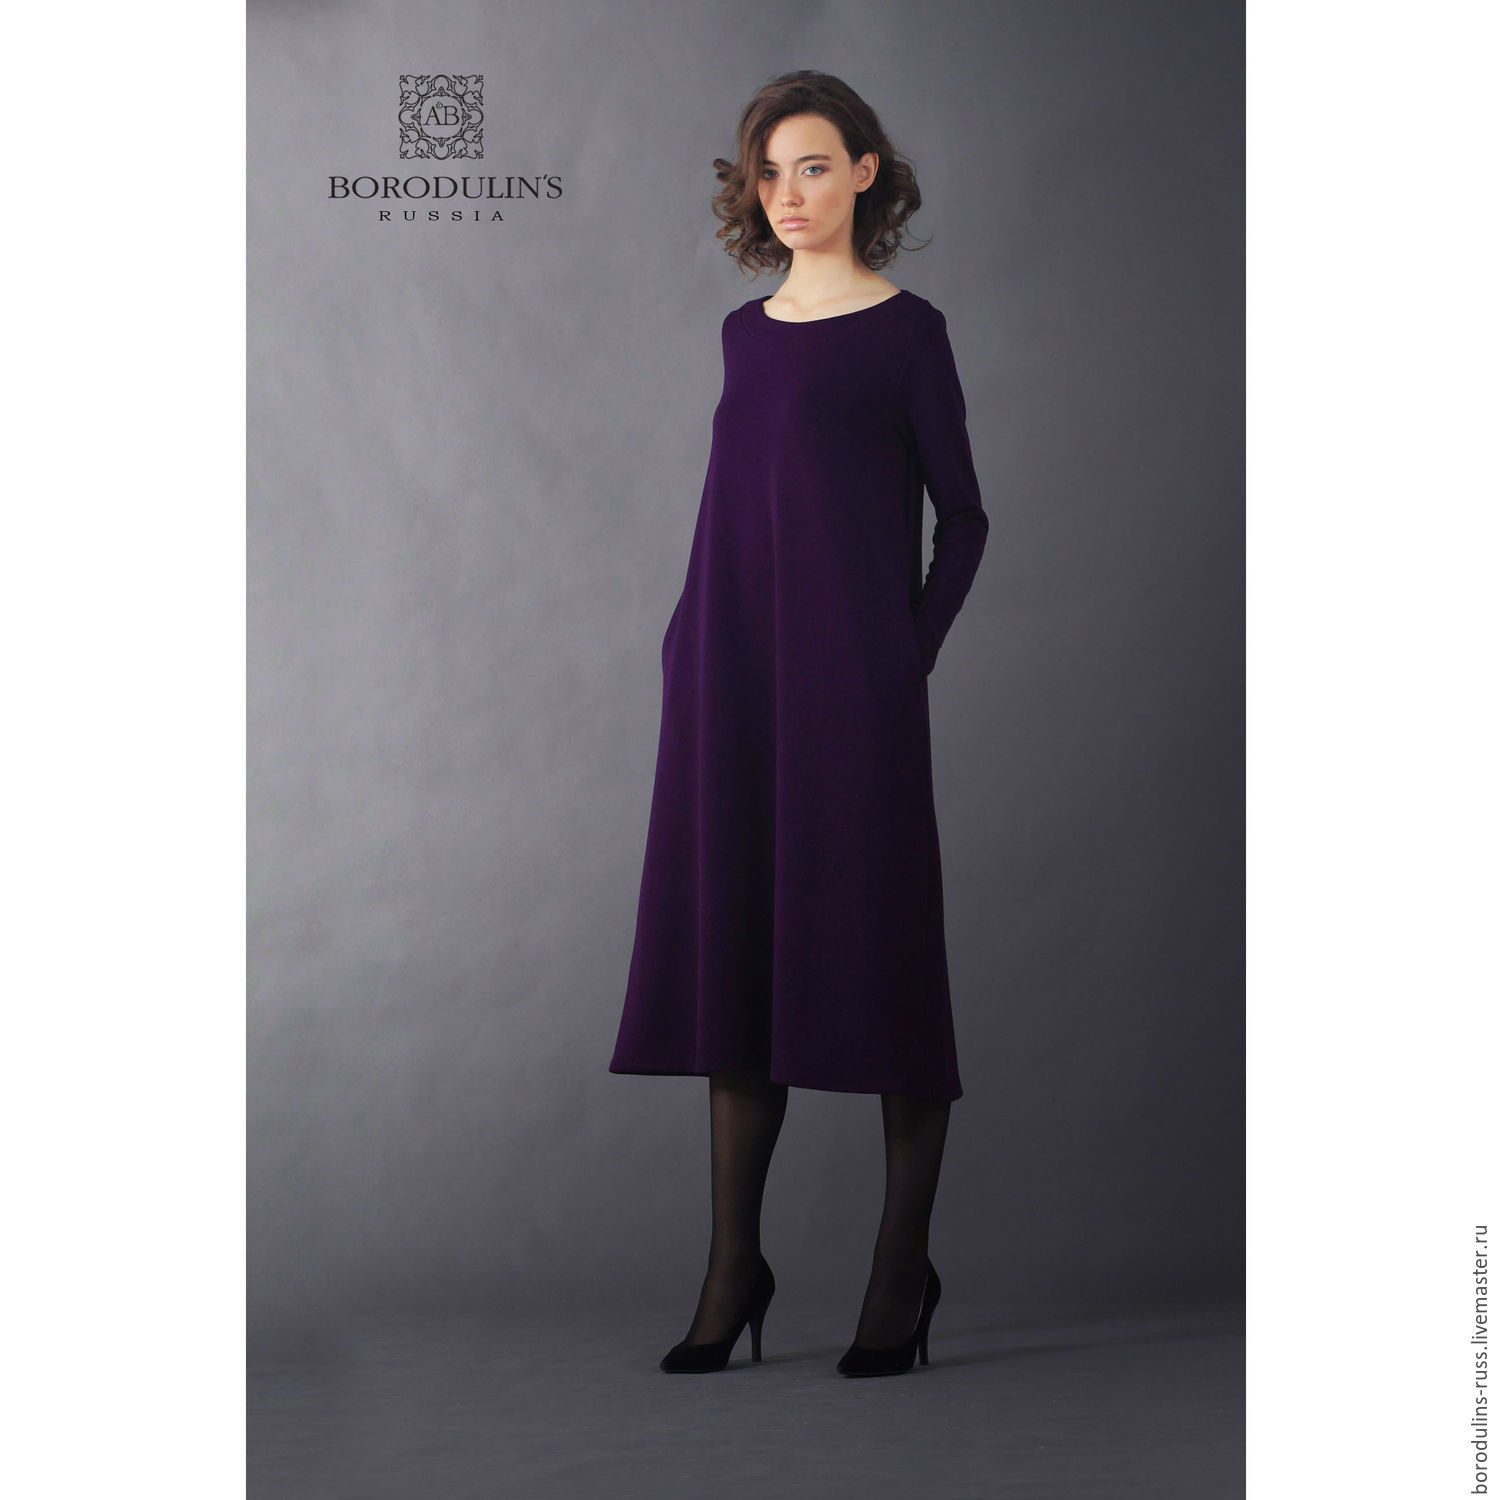 Jersey dress, colors violets, Dresses, Moscow,  Фото №1